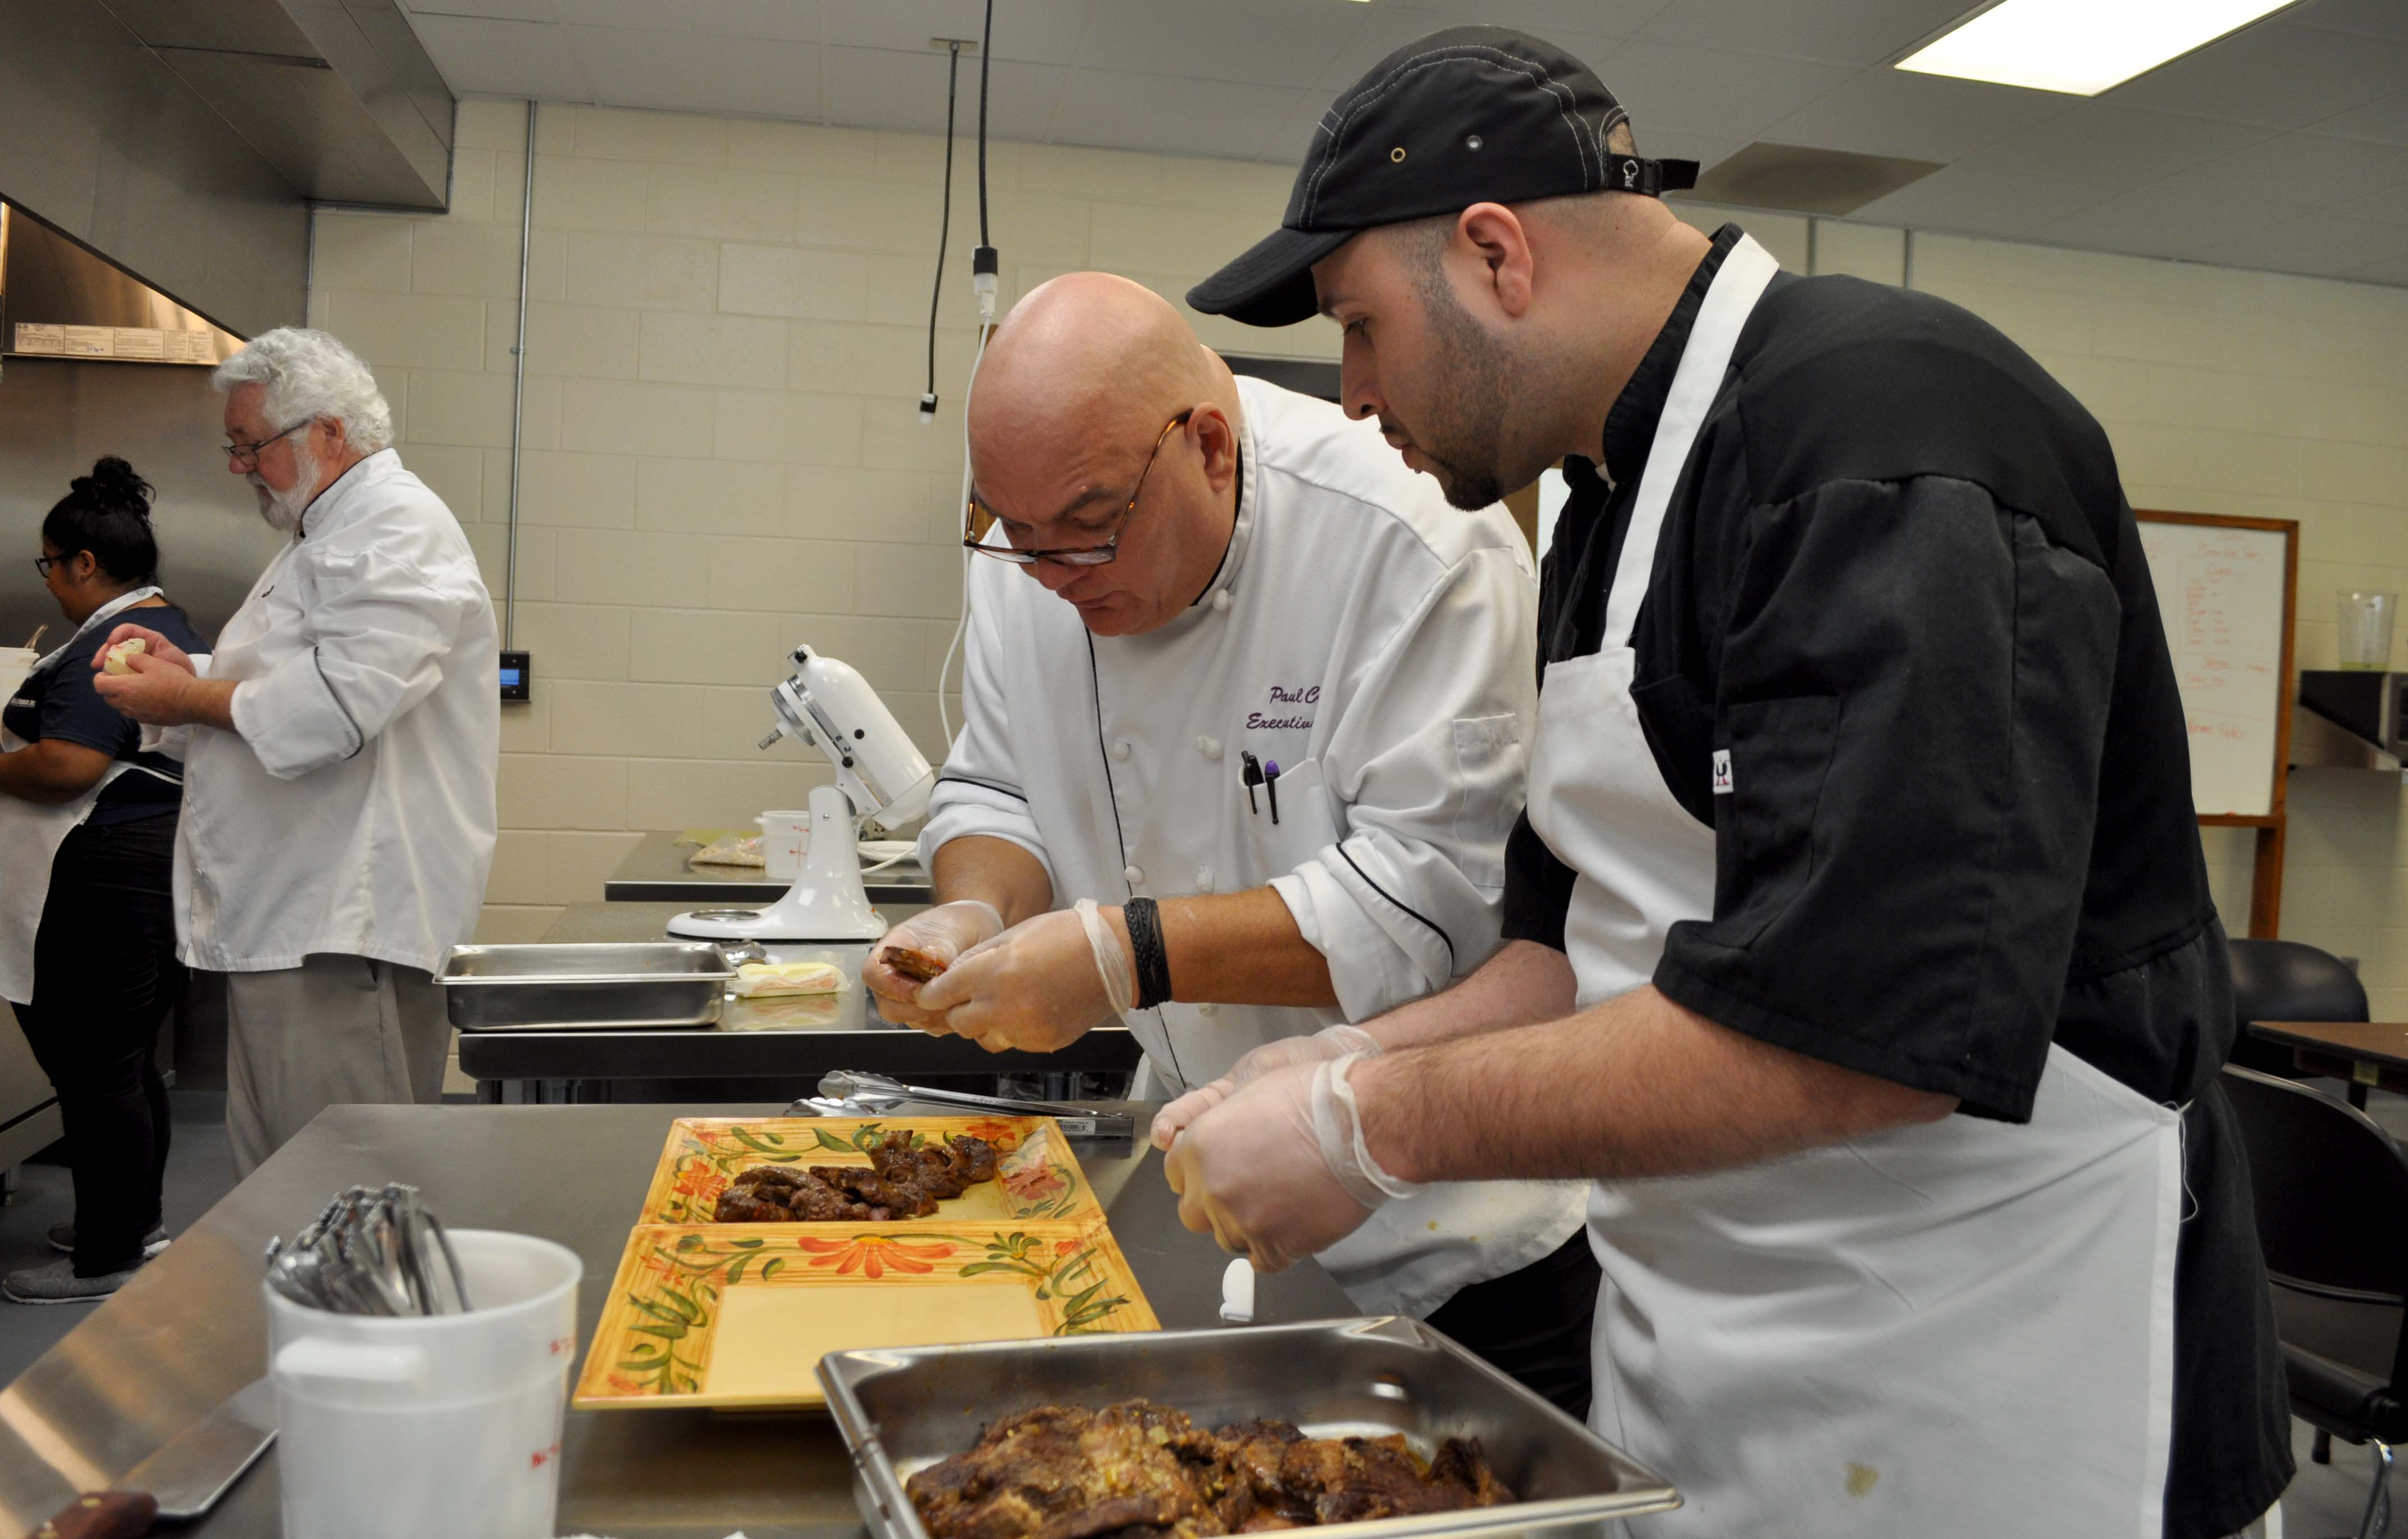 Cooking instructor shows student how to plate food.